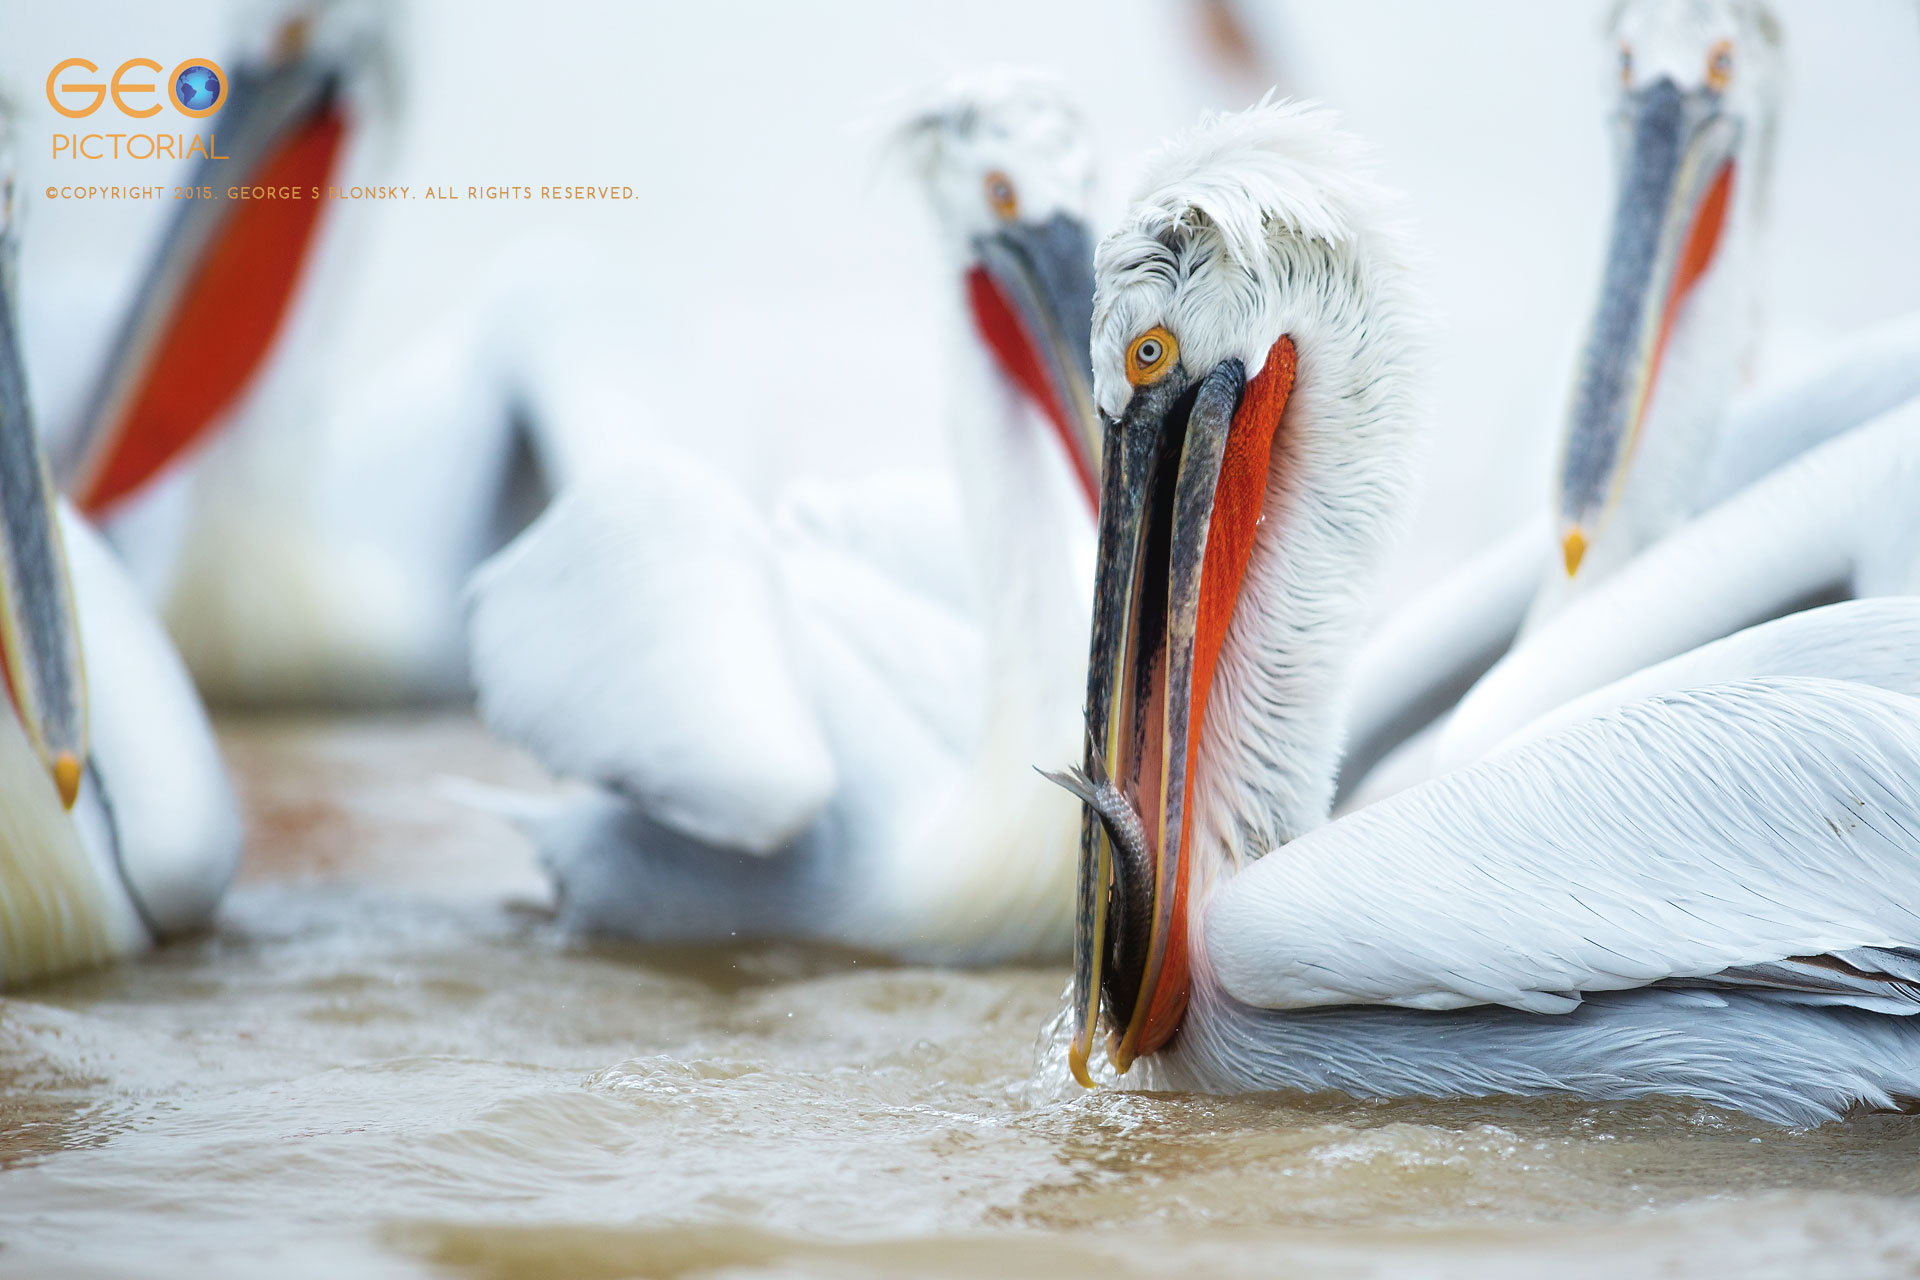 Dalmatian Pelican eating a fish